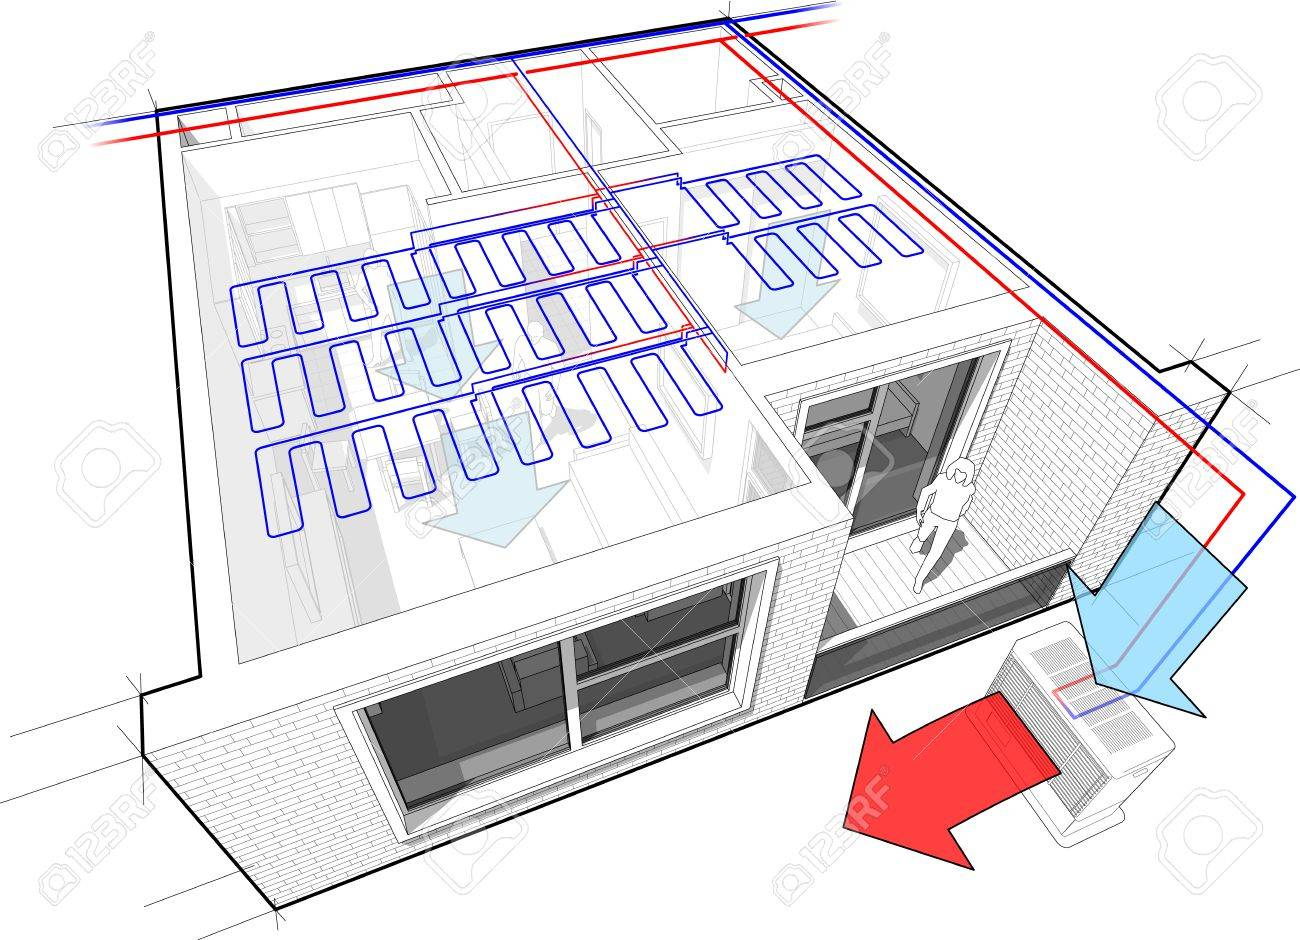 Camera Da Letto In Prospettiva Centrale perspective cut away diagram of a one bedroom apartment completely..